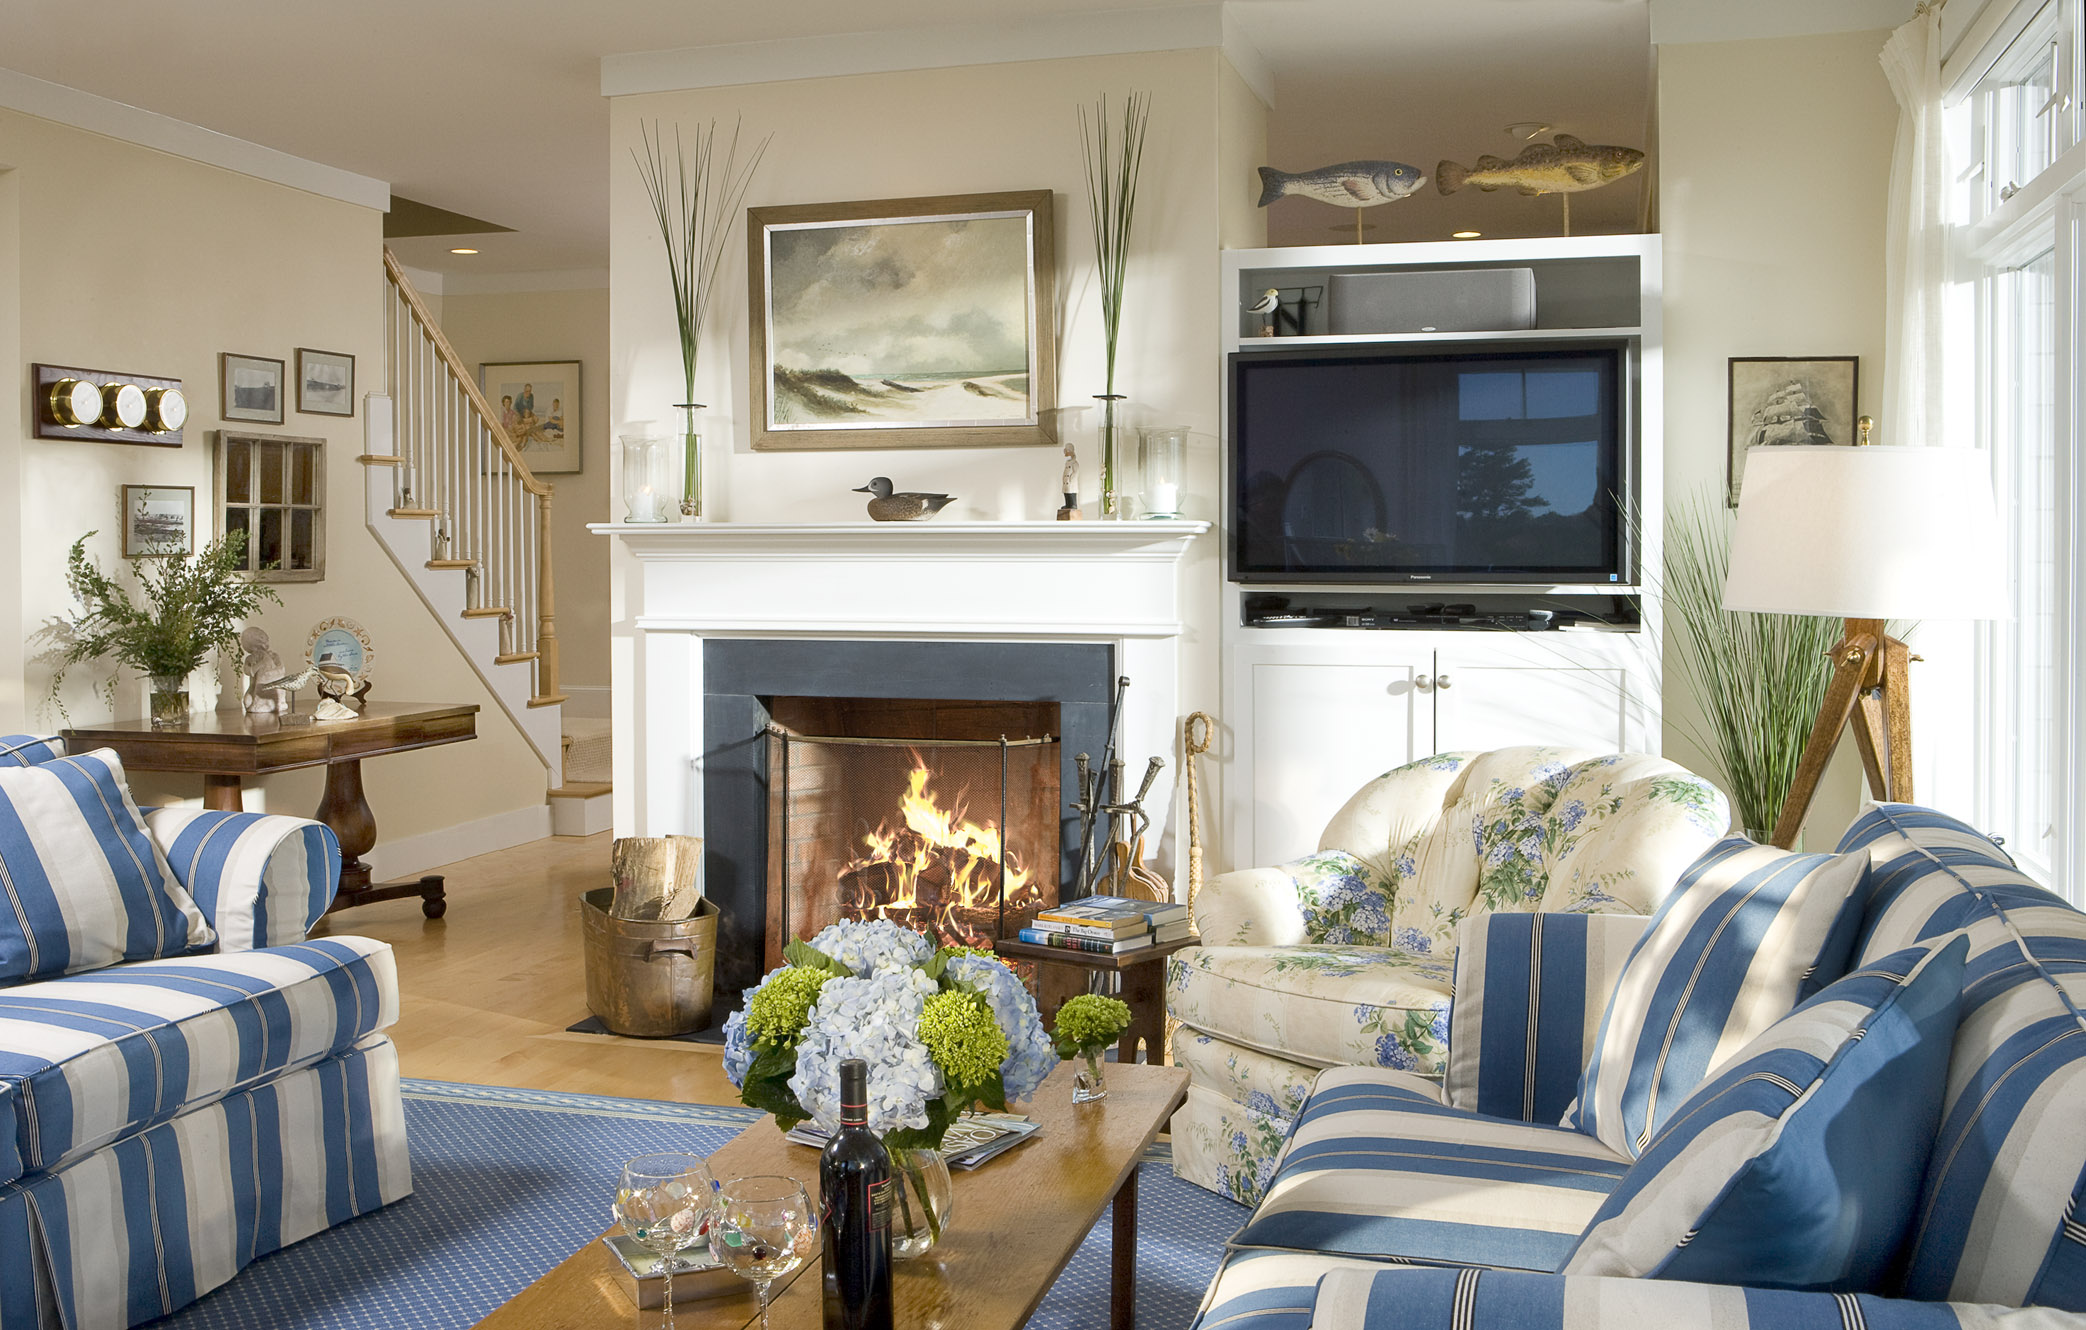 Pleasing The Abcs Of Decorating S Is For Small Room Decorating Ideas Largest Home Design Picture Inspirations Pitcheantrous